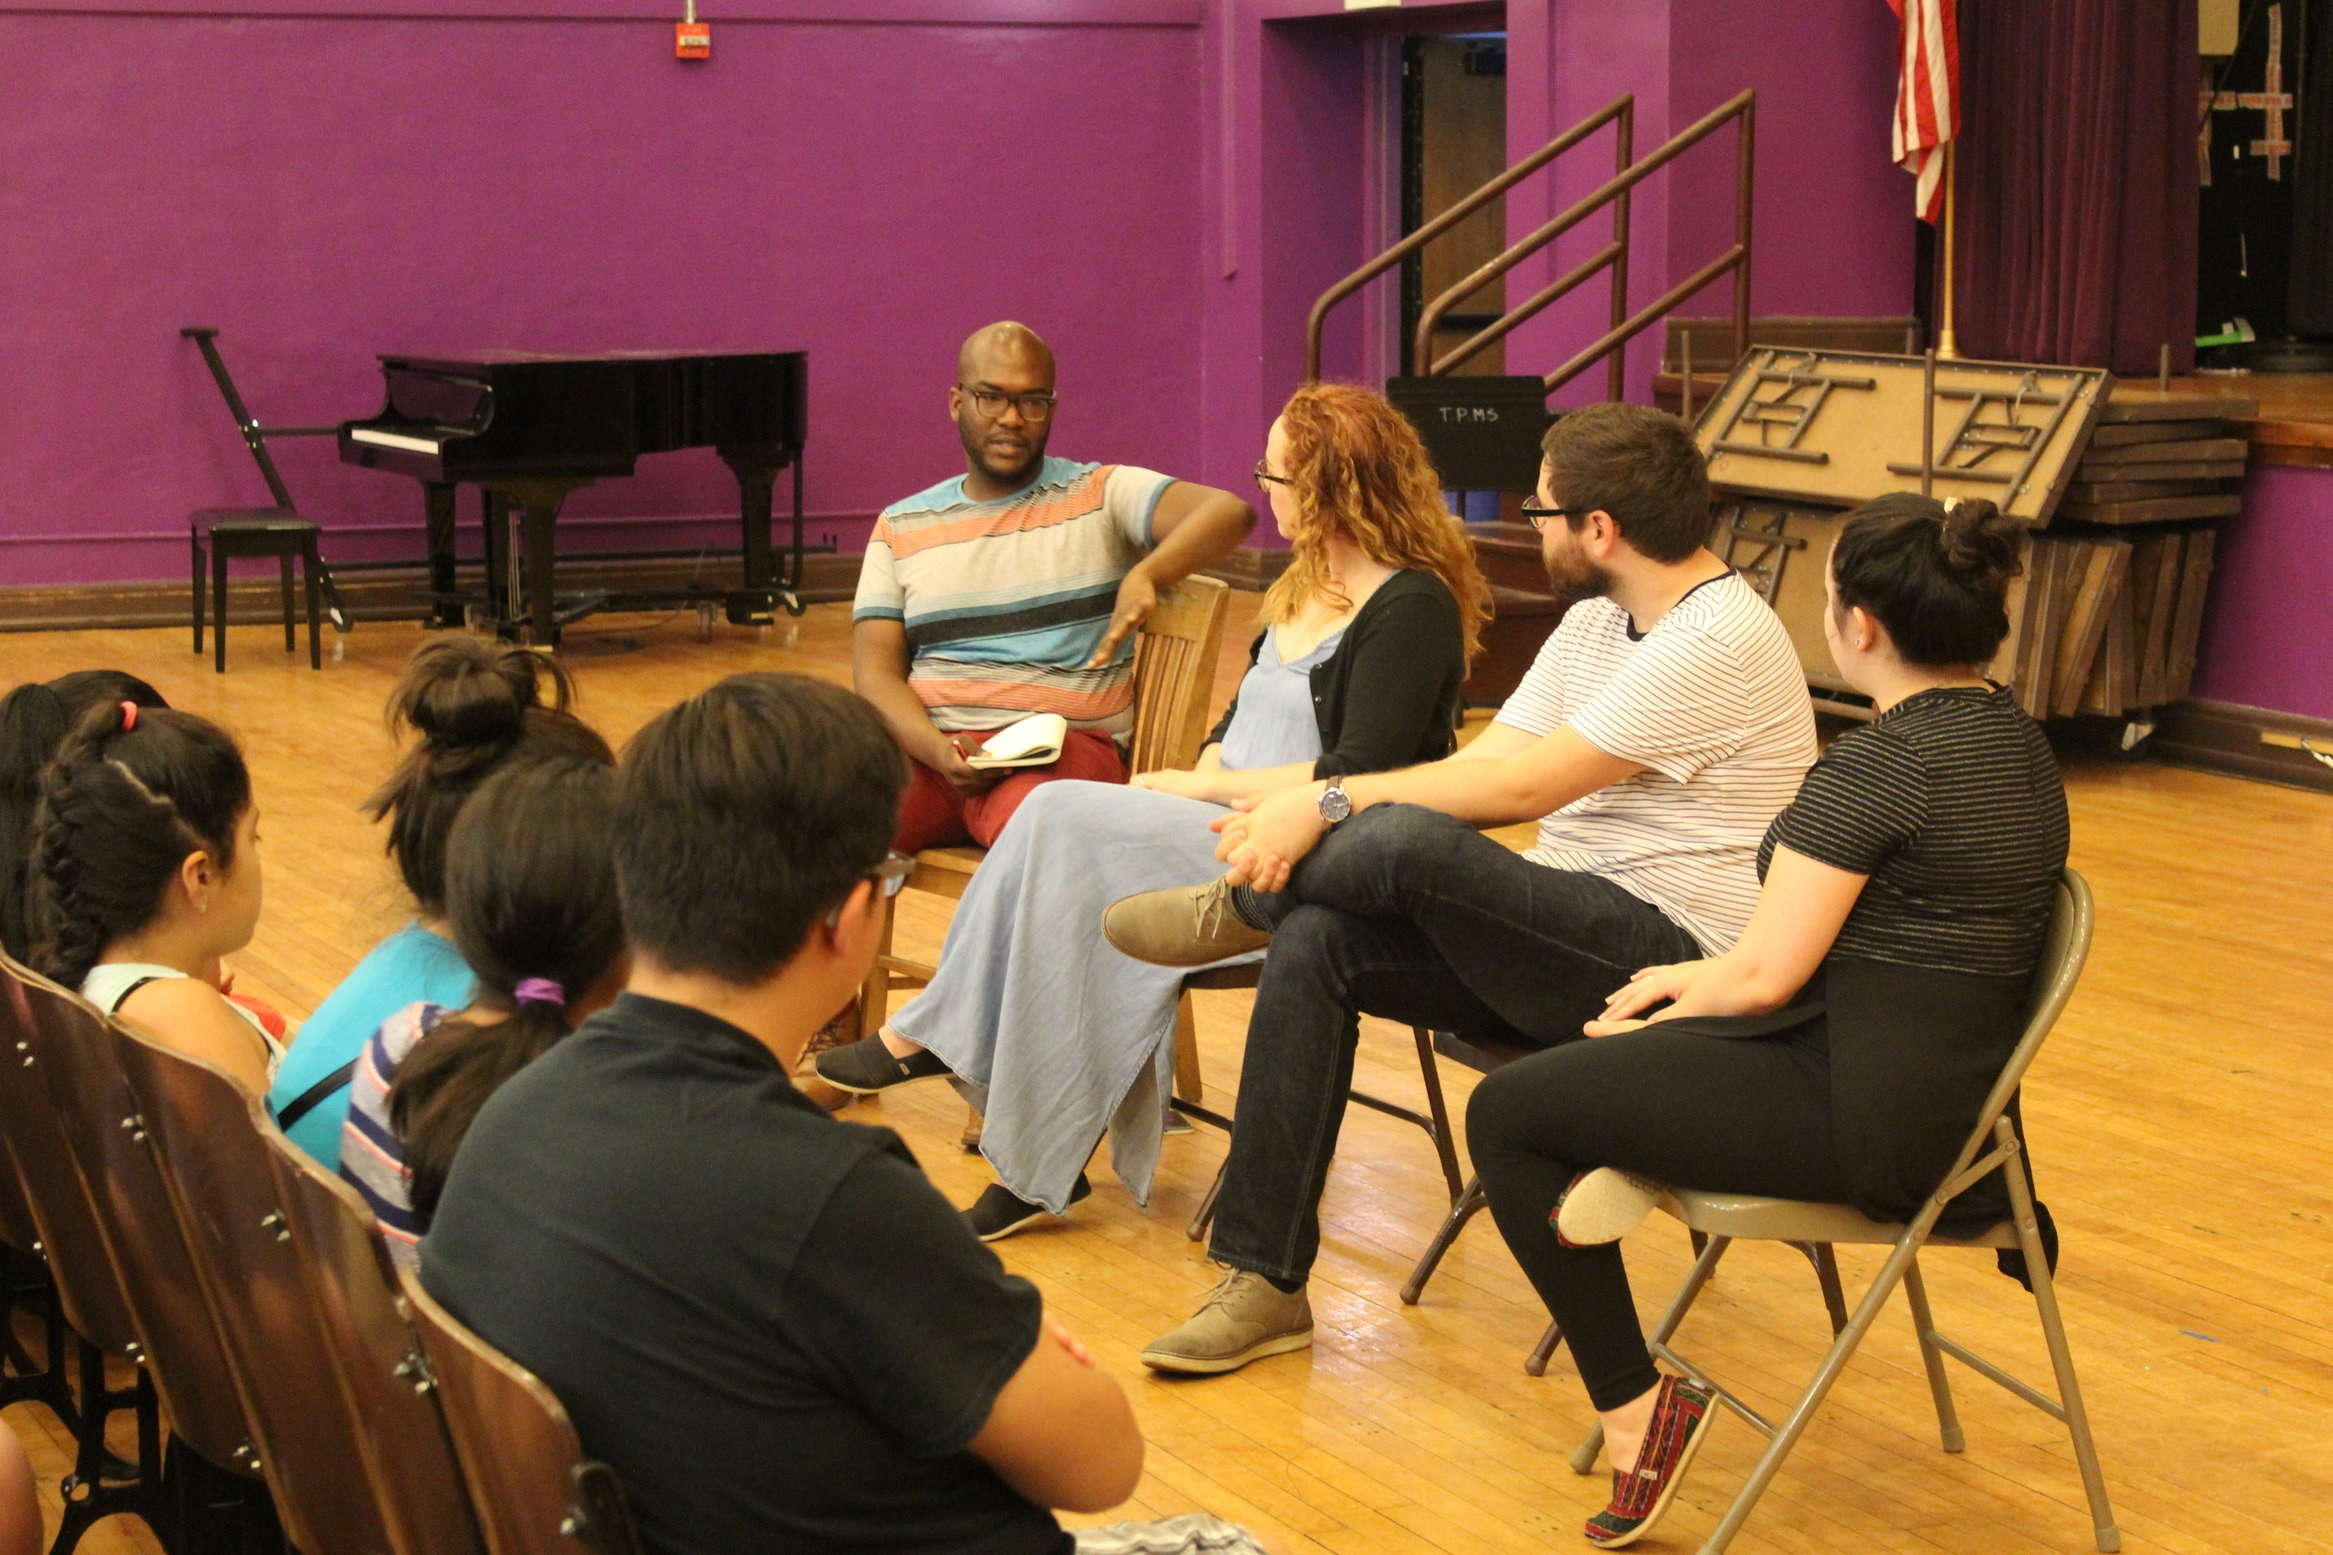 Ryan Blocker leads a panel discussion for students of The People's Music School (Chicago, IL) with members of Trade Winds.